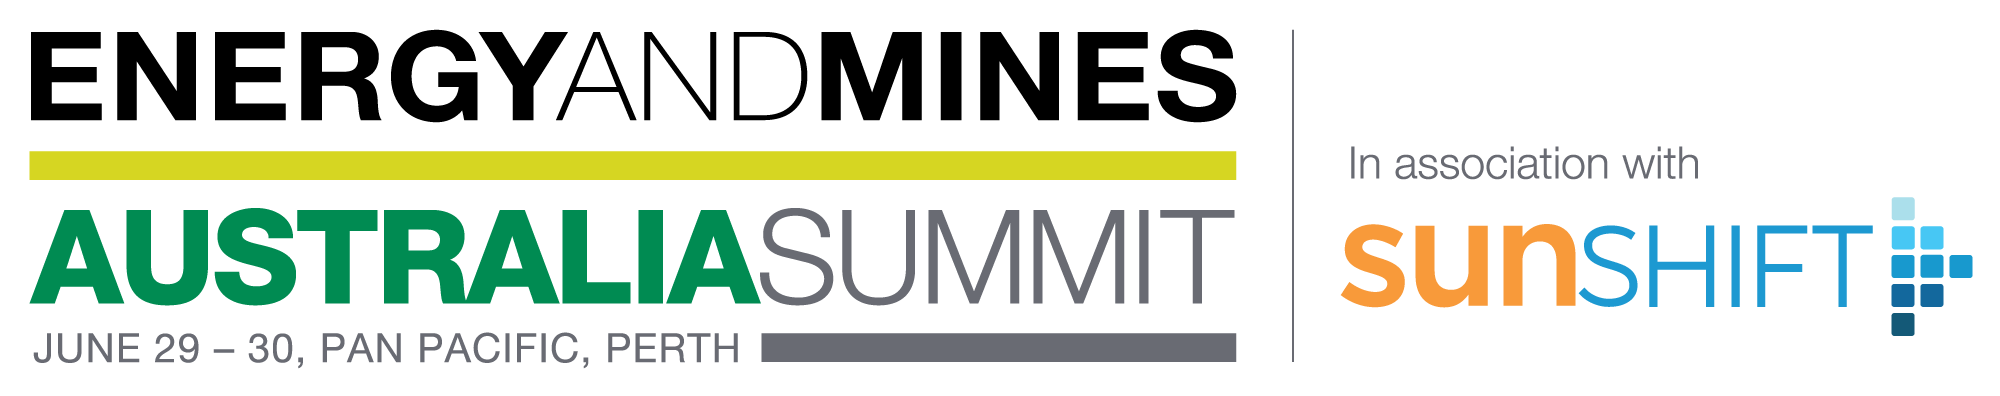 Australia Summit | June 29-30